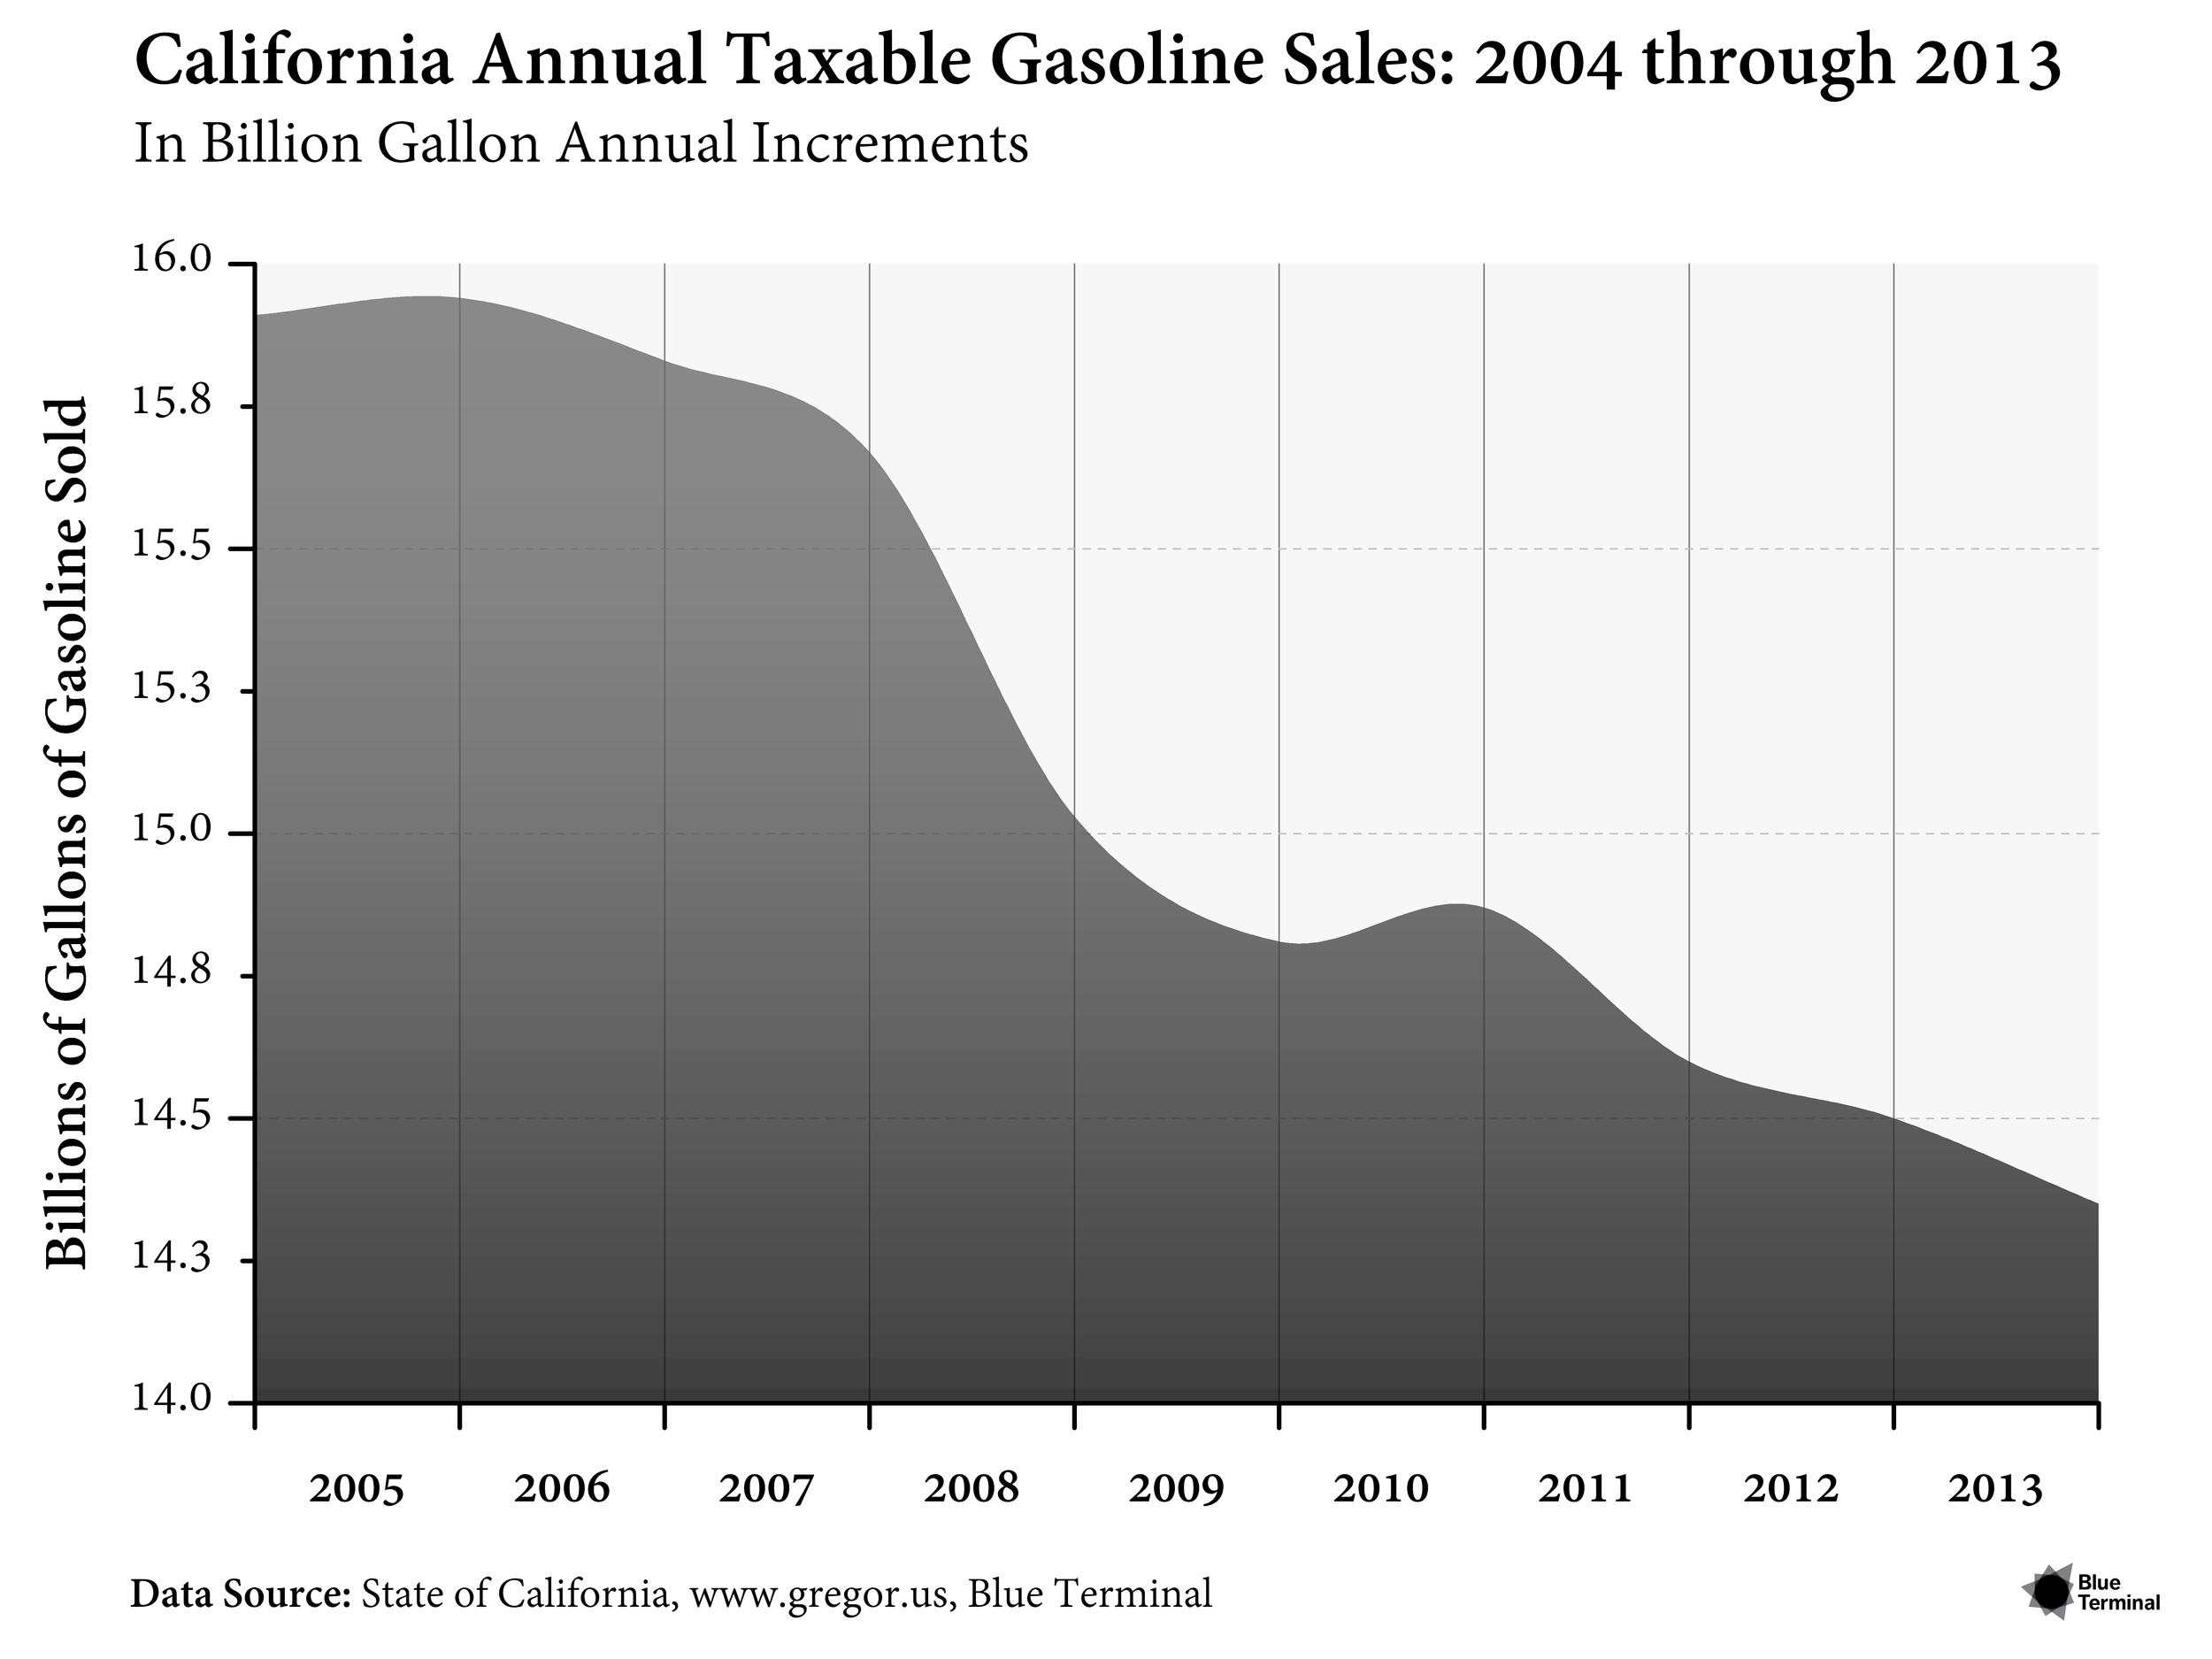 CALIFORNIA ANNUAL TAXABLE GASOLINE SALES: 2004 THROUGH 2013 Release Date : January 2014  This plot of California's annual taxable gasoline sales uses several aesthetic features toannounce this trend in liquid fuel use. A slight transparency in this area fill chart allows thegrid to show through while the flowing line uses spline smoothing to appear as a fluid.